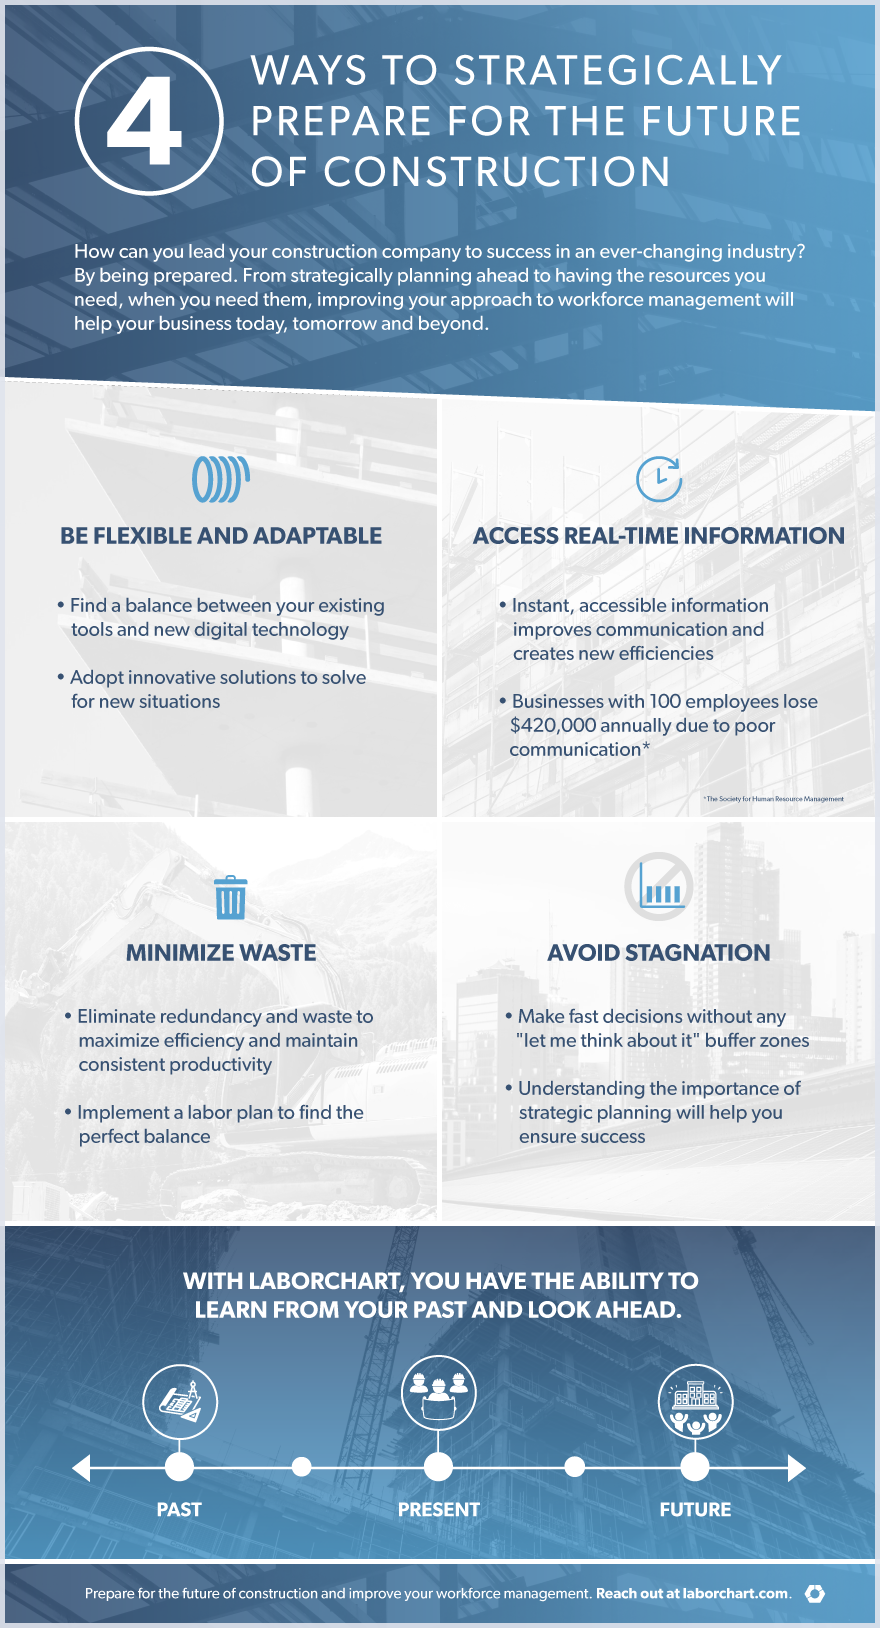 4 ways to strategically prepare for the future of construction explanation infographic.